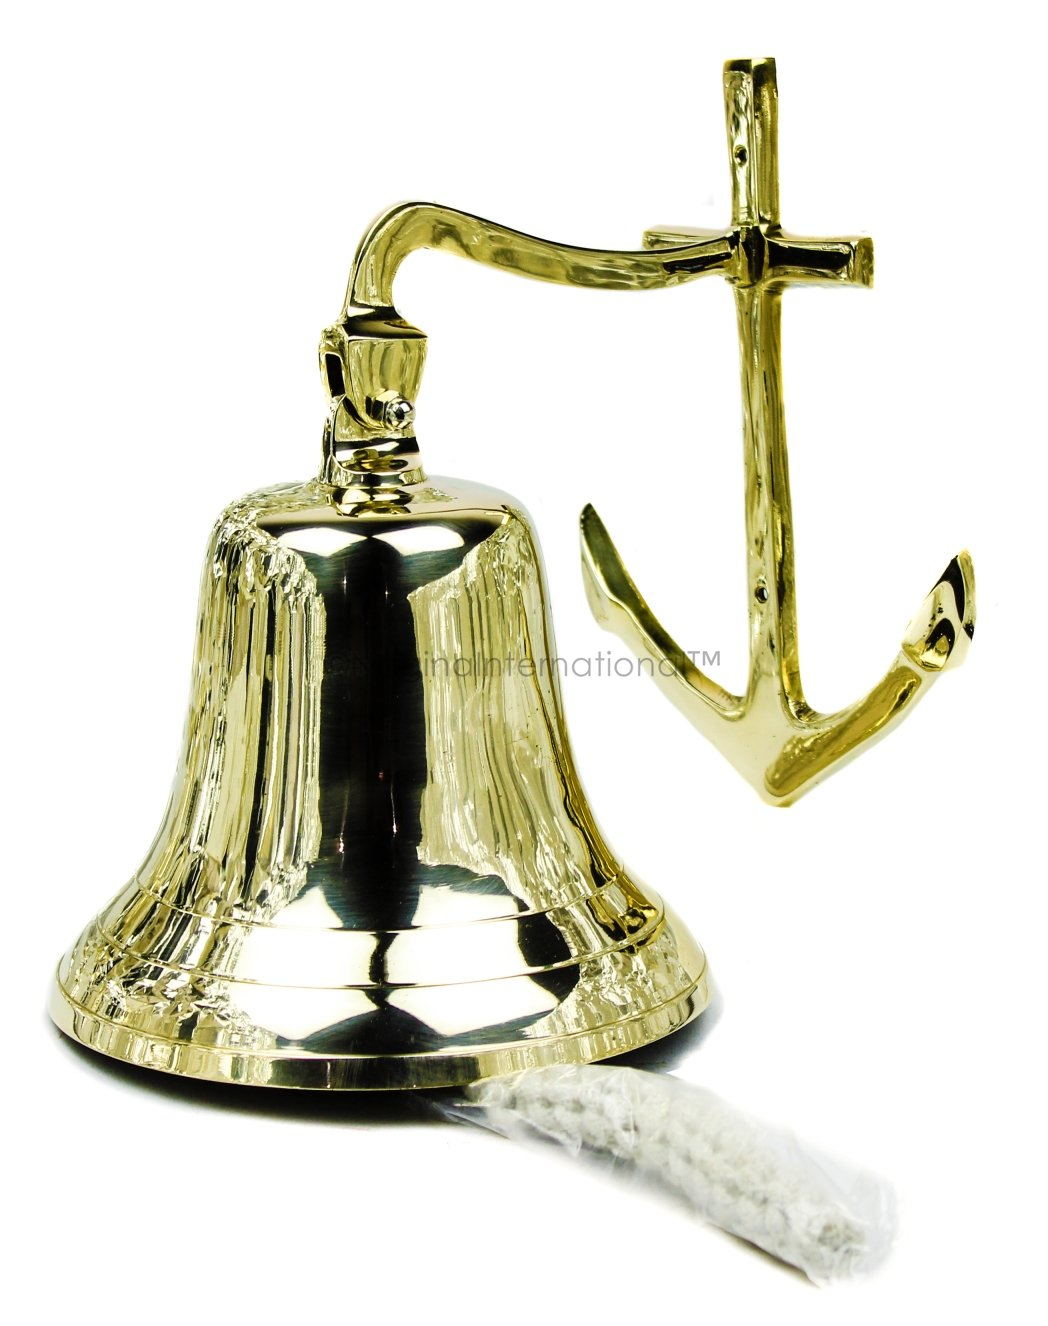 Nagina International 11 Large Nautical Premium Ringing Brass Bell with Polished Shiny Finish | Beautiful Pirate Themed Decor | Christmas Special No Model